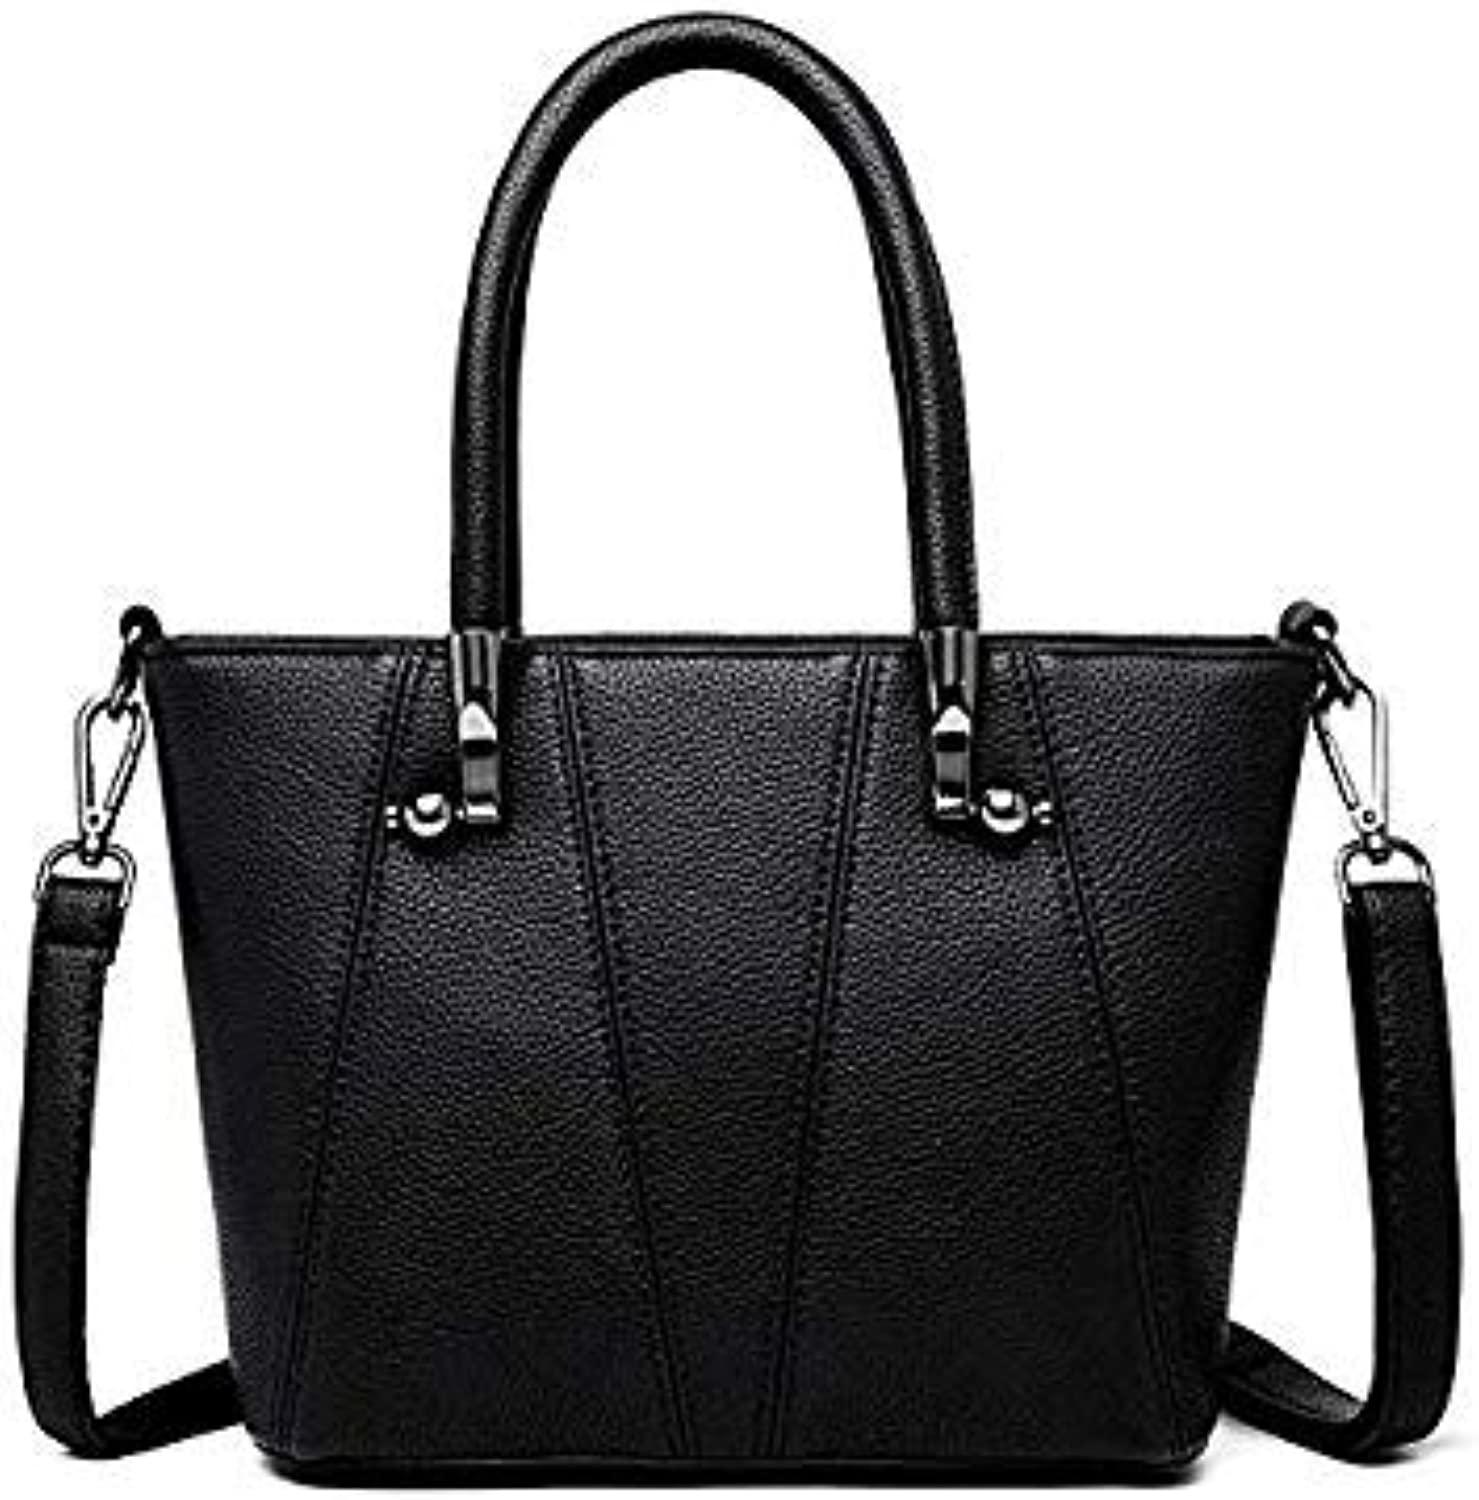 Bloomerang YASICAIDI High Quality PU Leather Women Handbags Patchwork Women Shoulder Bags Large Capacity Casual Tote Bags Soft Leather Bags color Black 33cm